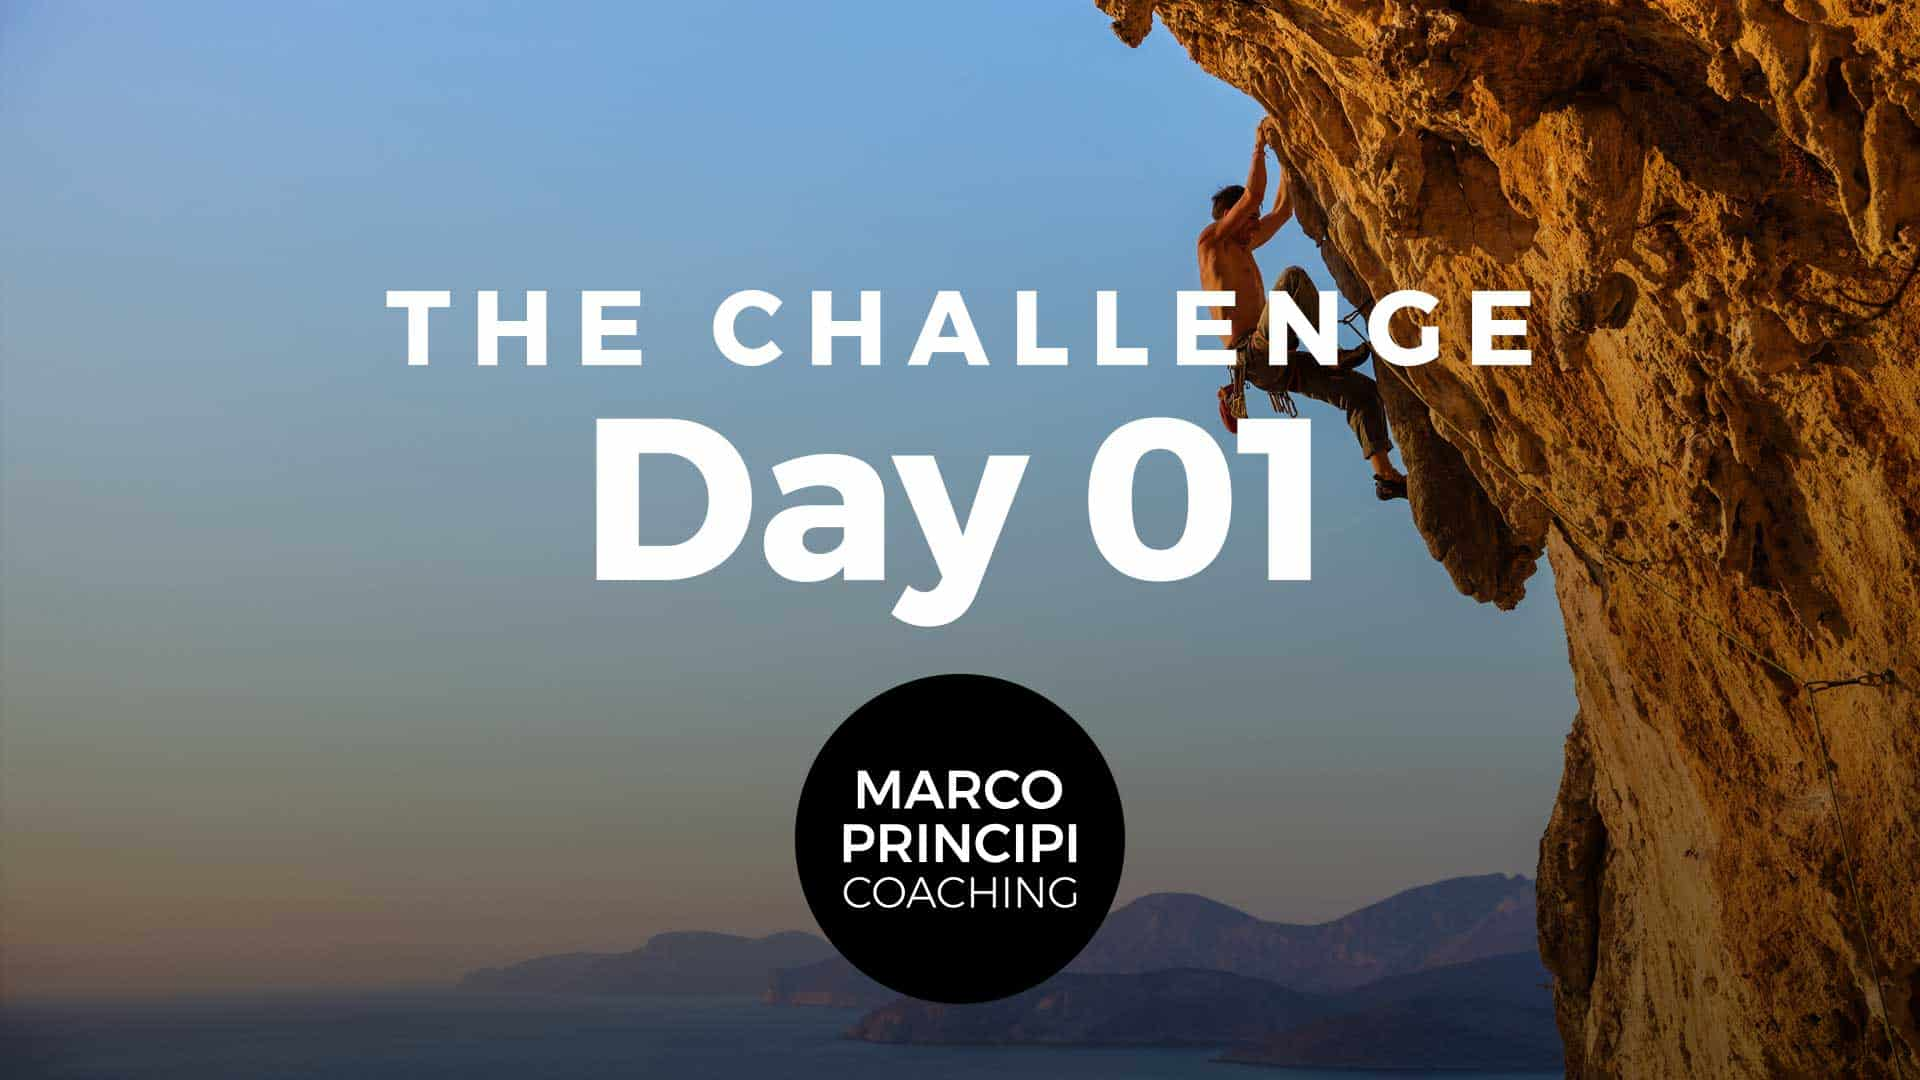 Marco Principi YT Cover The Challenge Day 001